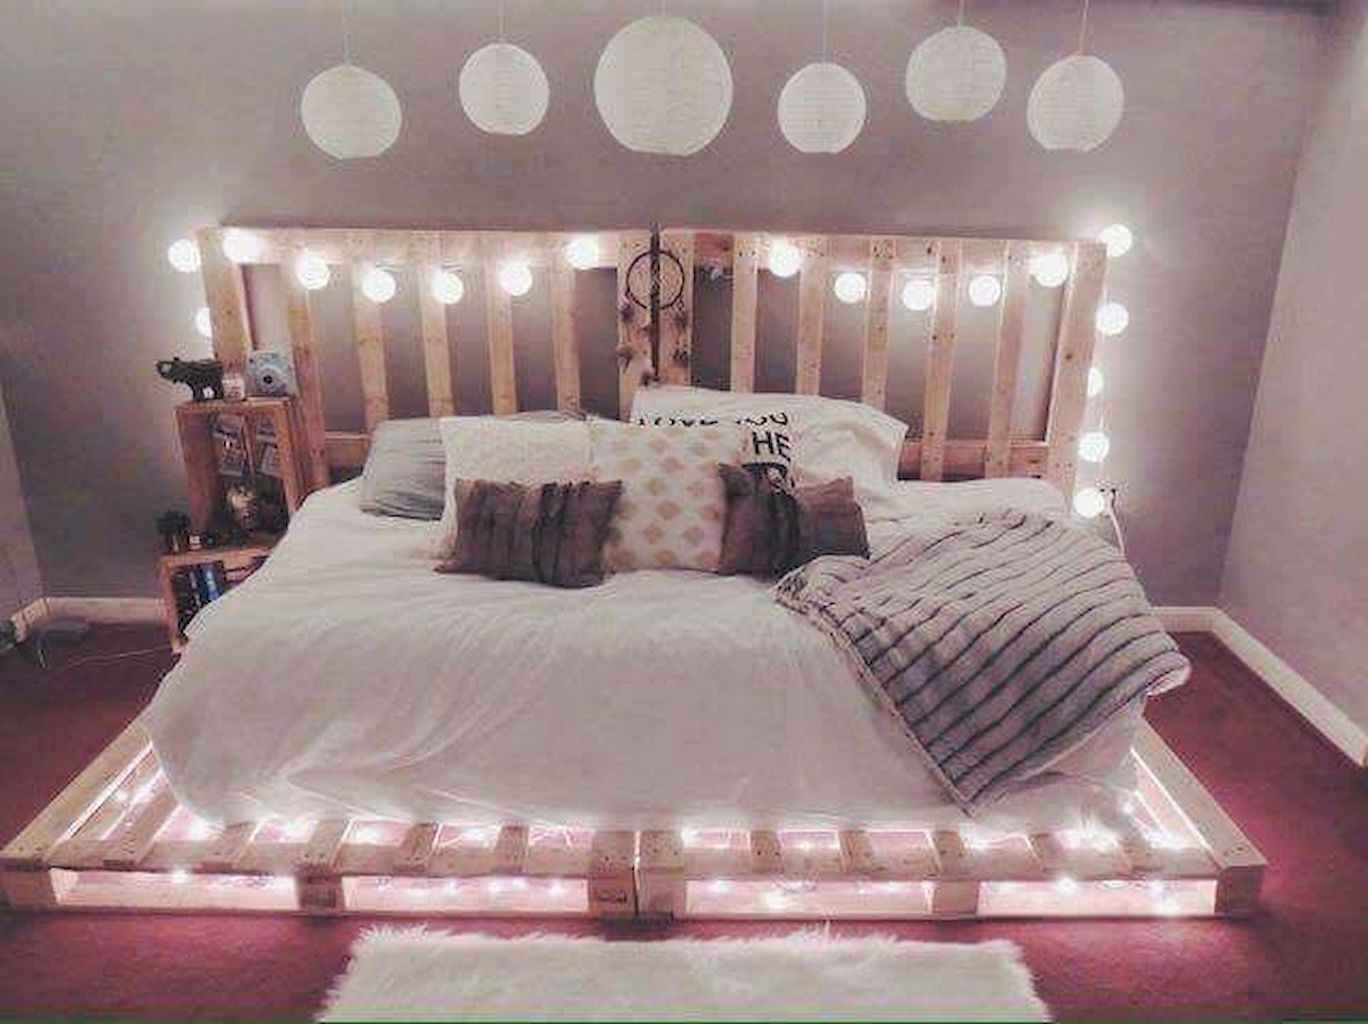 Couples first apartment decorating ideas (101)